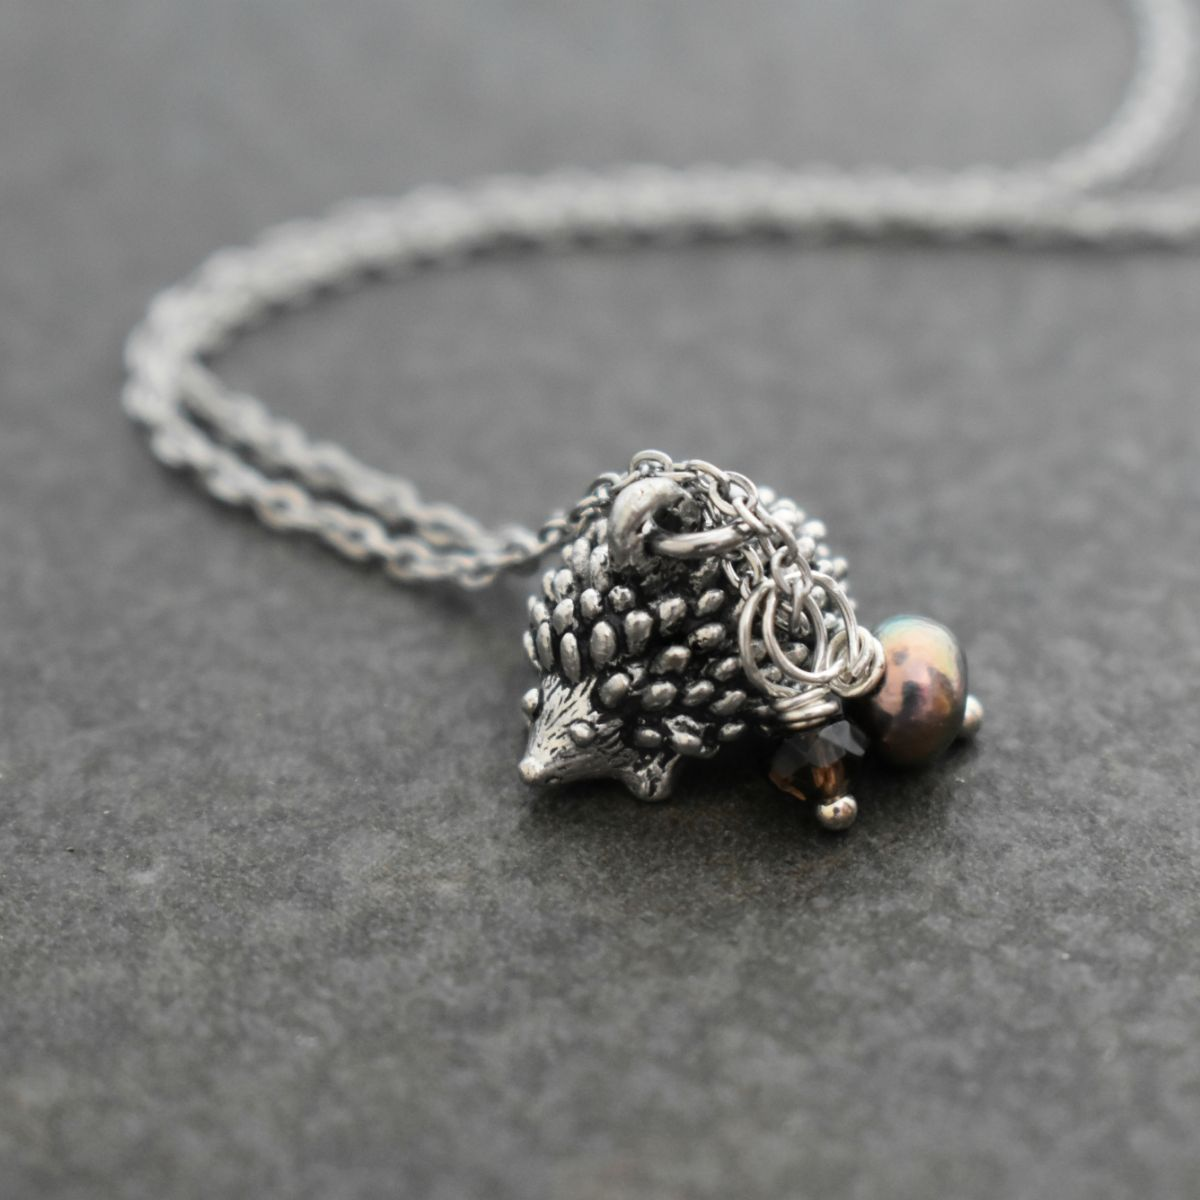 Hedgehog and gemstones.